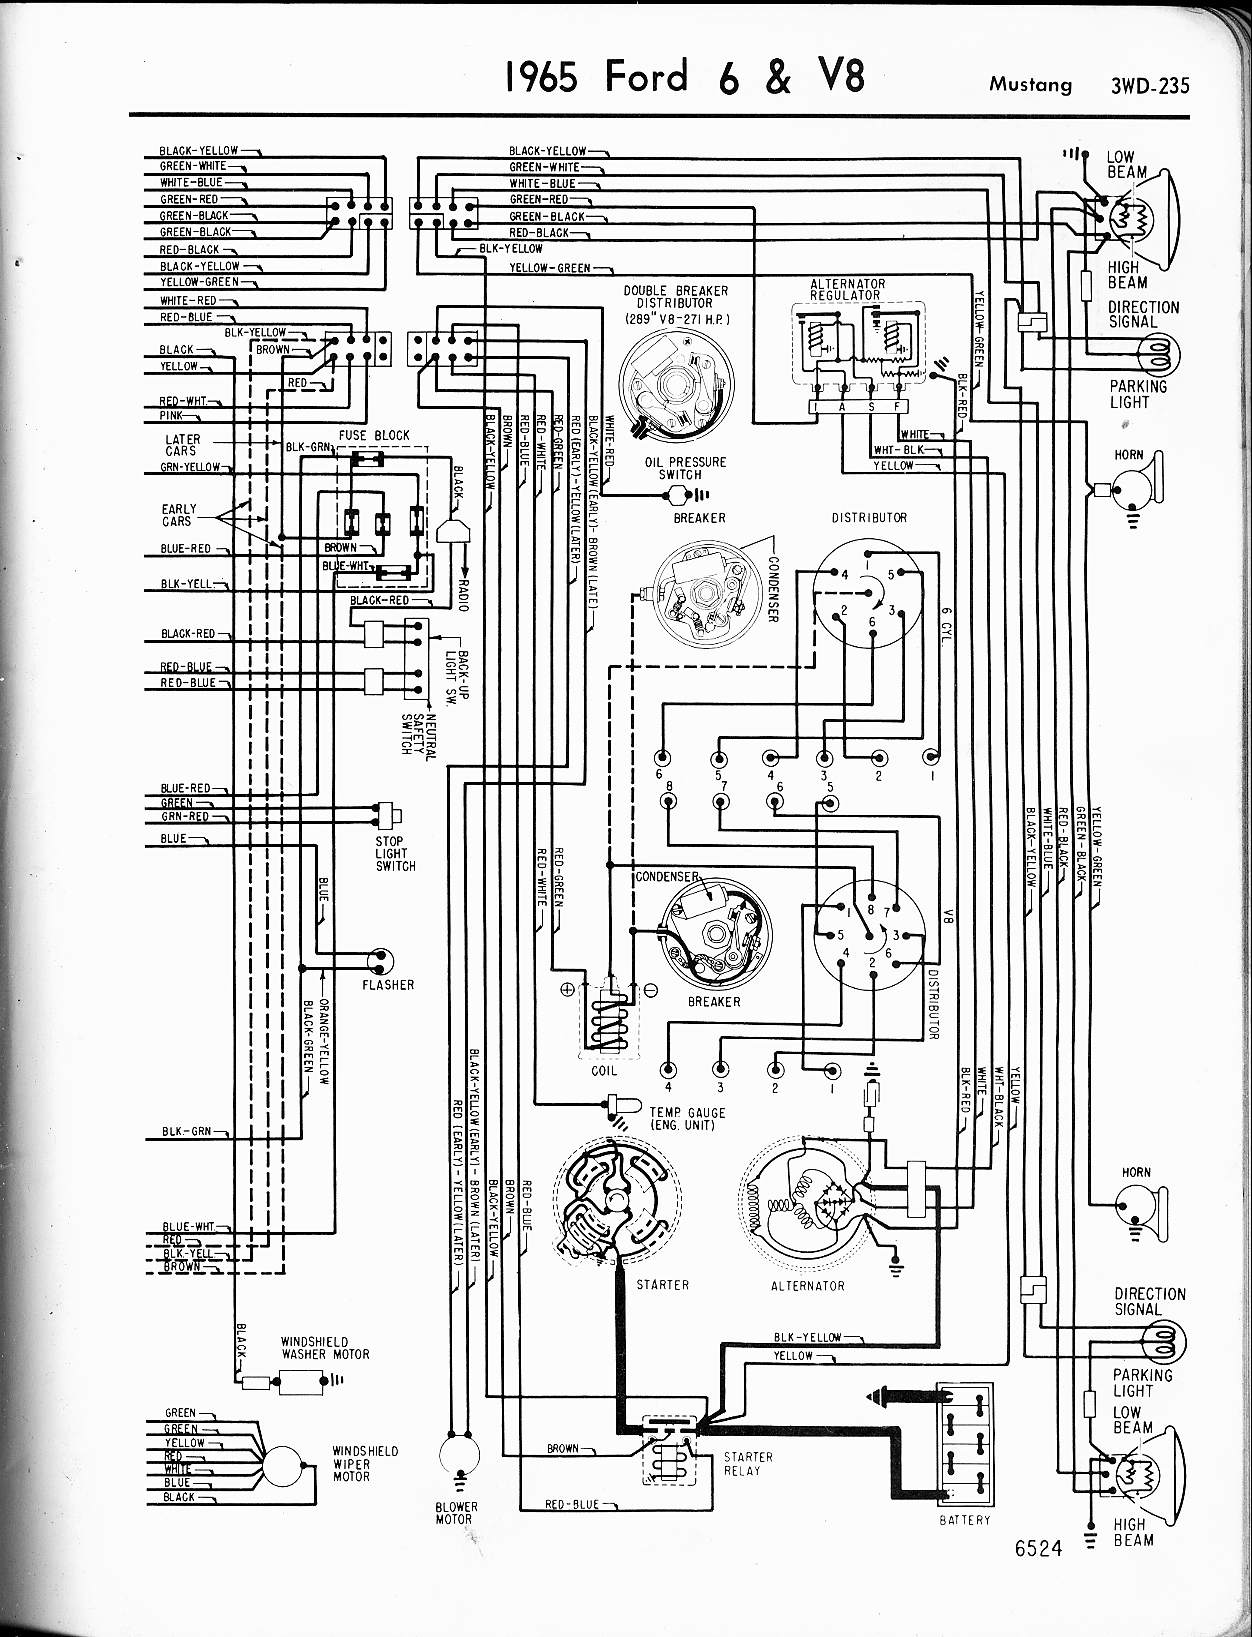 hight resolution of 57 65 ford wiring diagrams1965 6 u0026 v8 mustang right